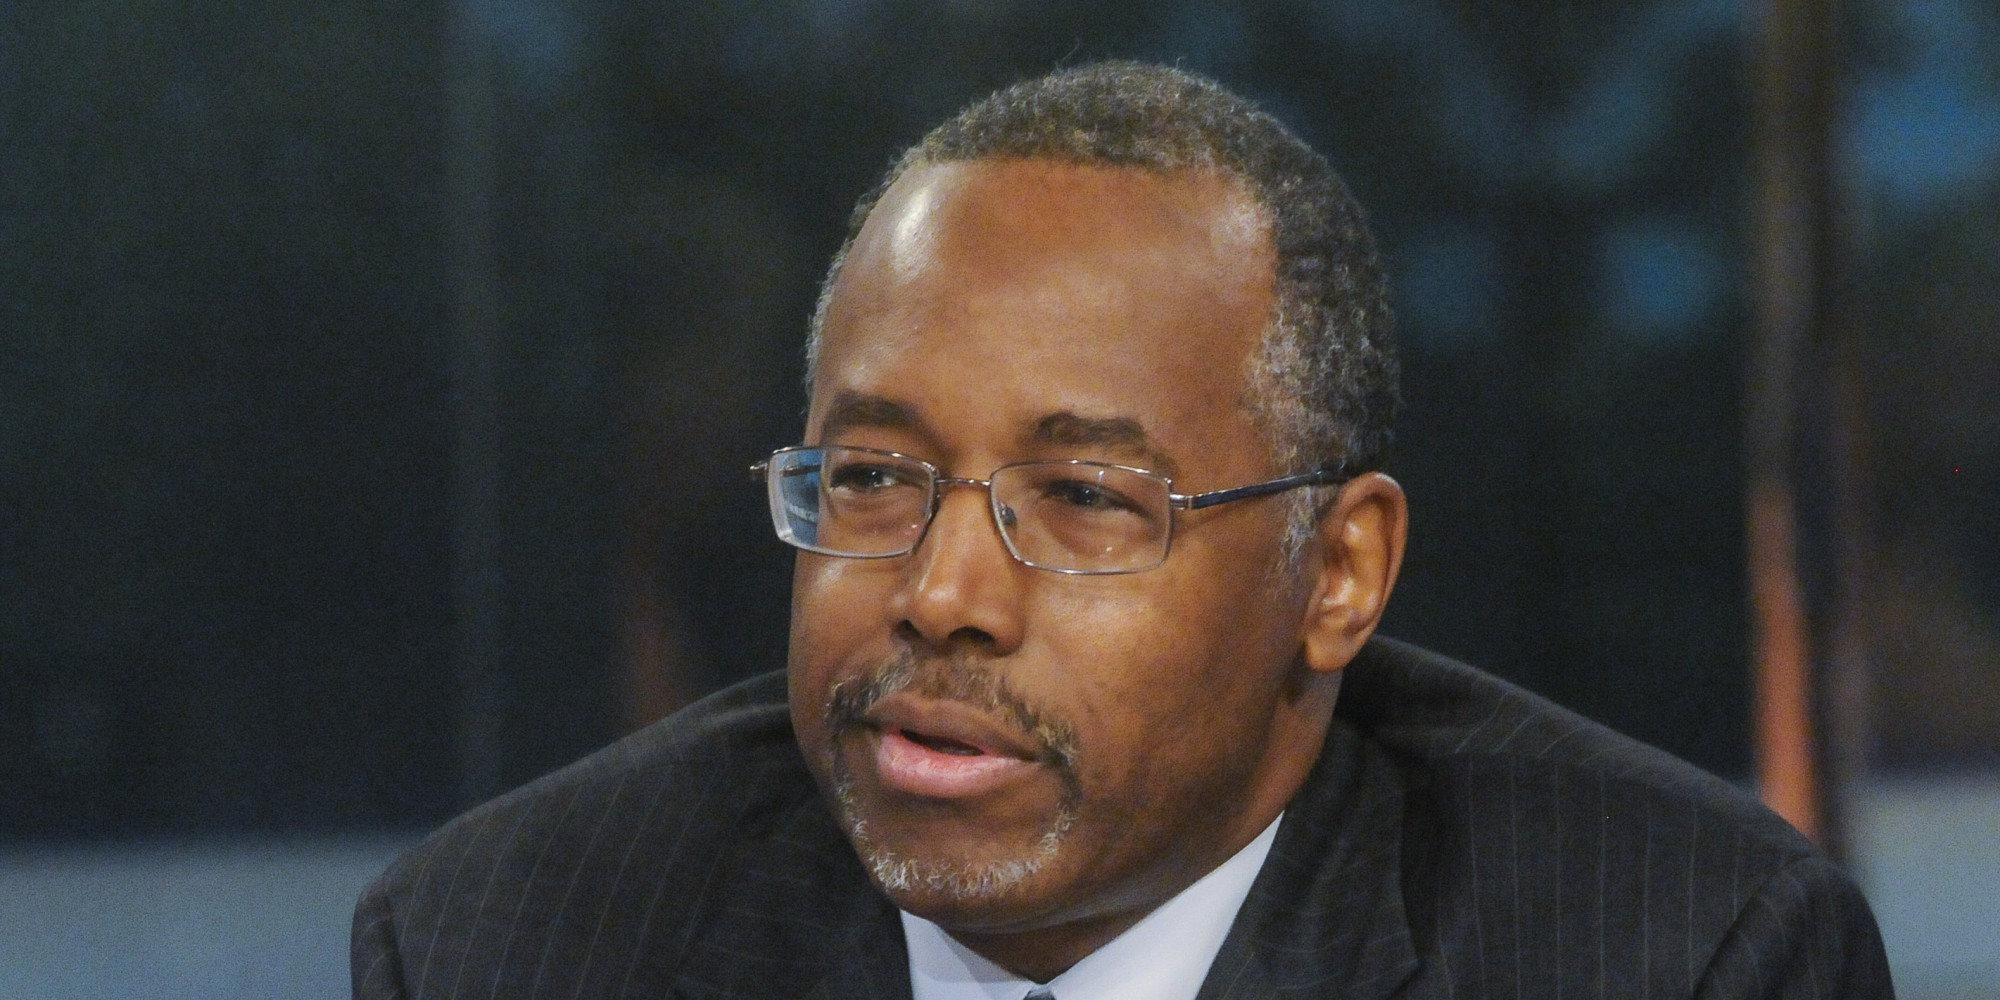 Ben Carson Apologizes For Plagiarism Says He S Working To